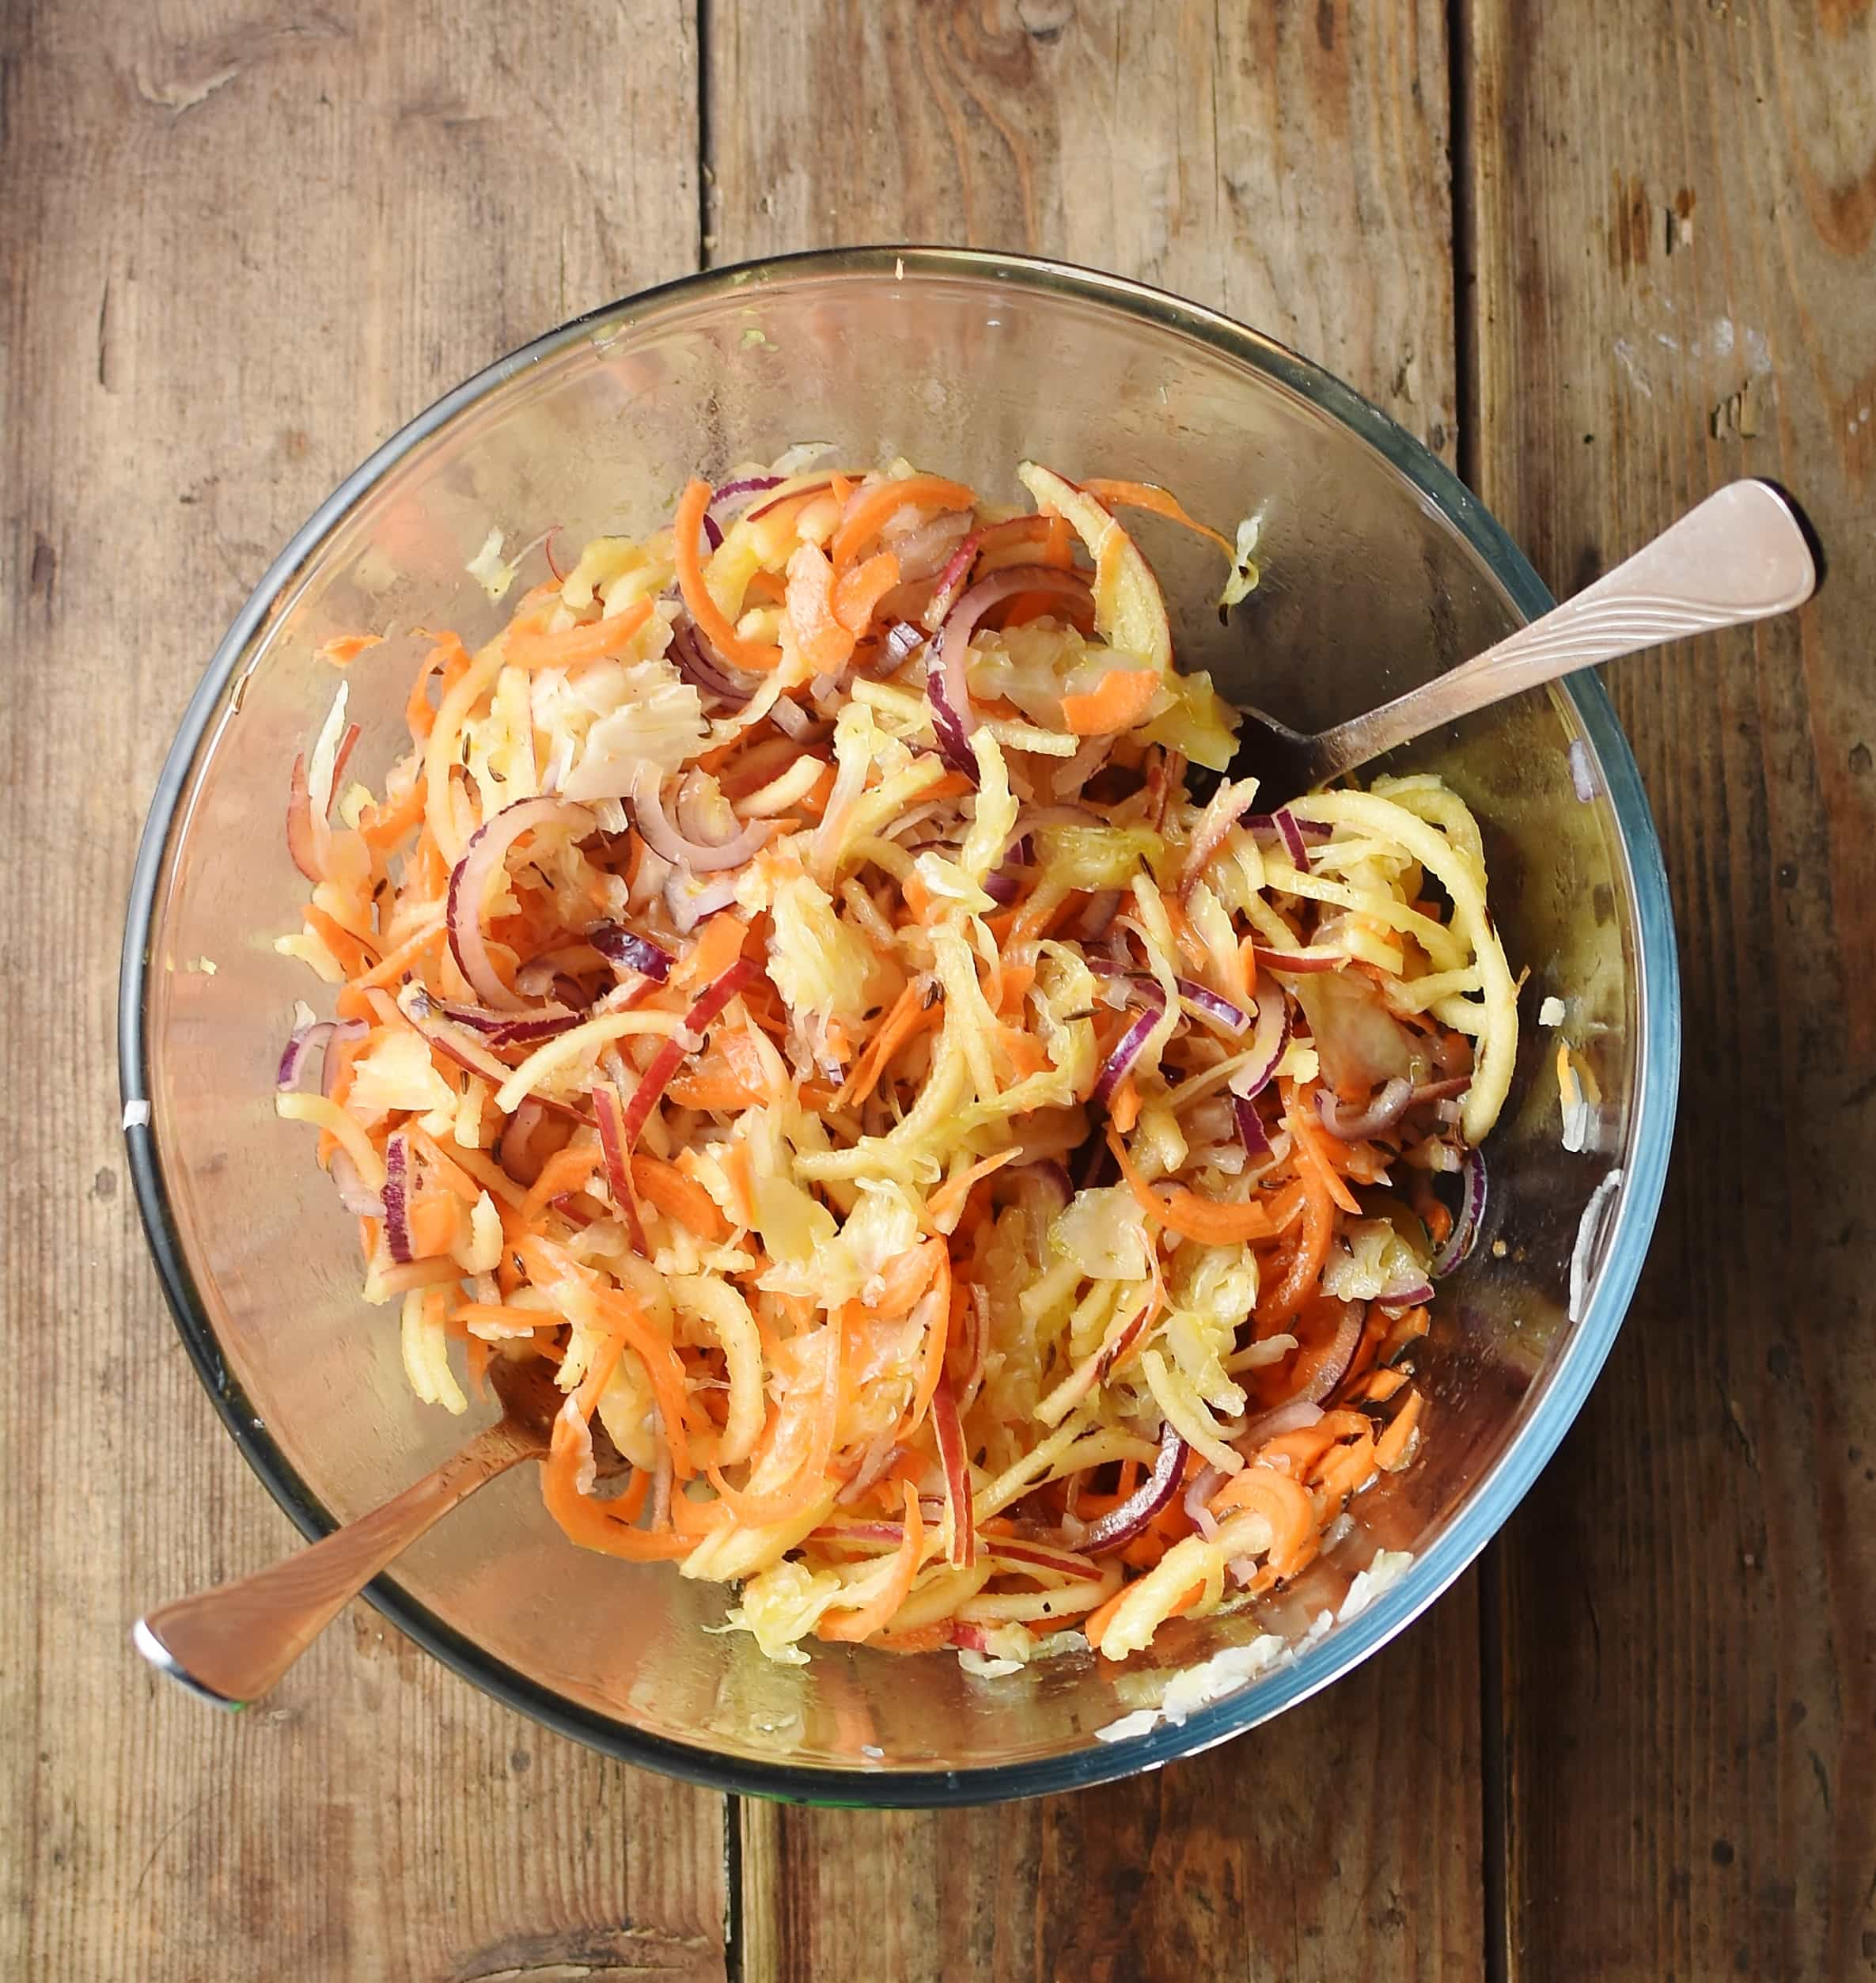 Sauerkraut, apple and carrot salad in mixing bowl with 2 forks.